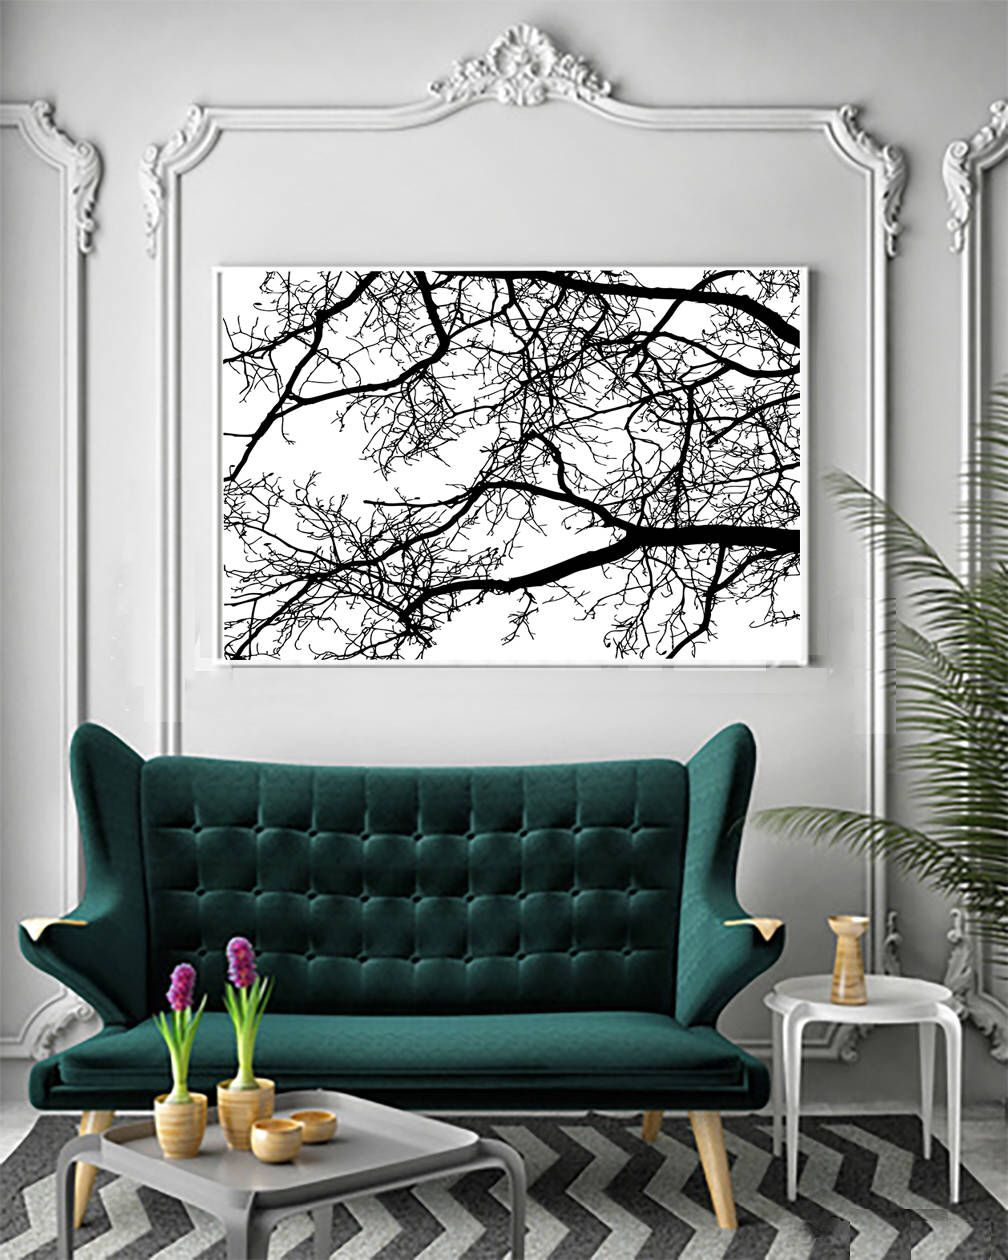 Large Poster Tree Branches As Wall Art Living Room Decor Or Bedroom Decor White And Black Poster Wall Art Decor Living Room Wall Art Living Room Branch Decor